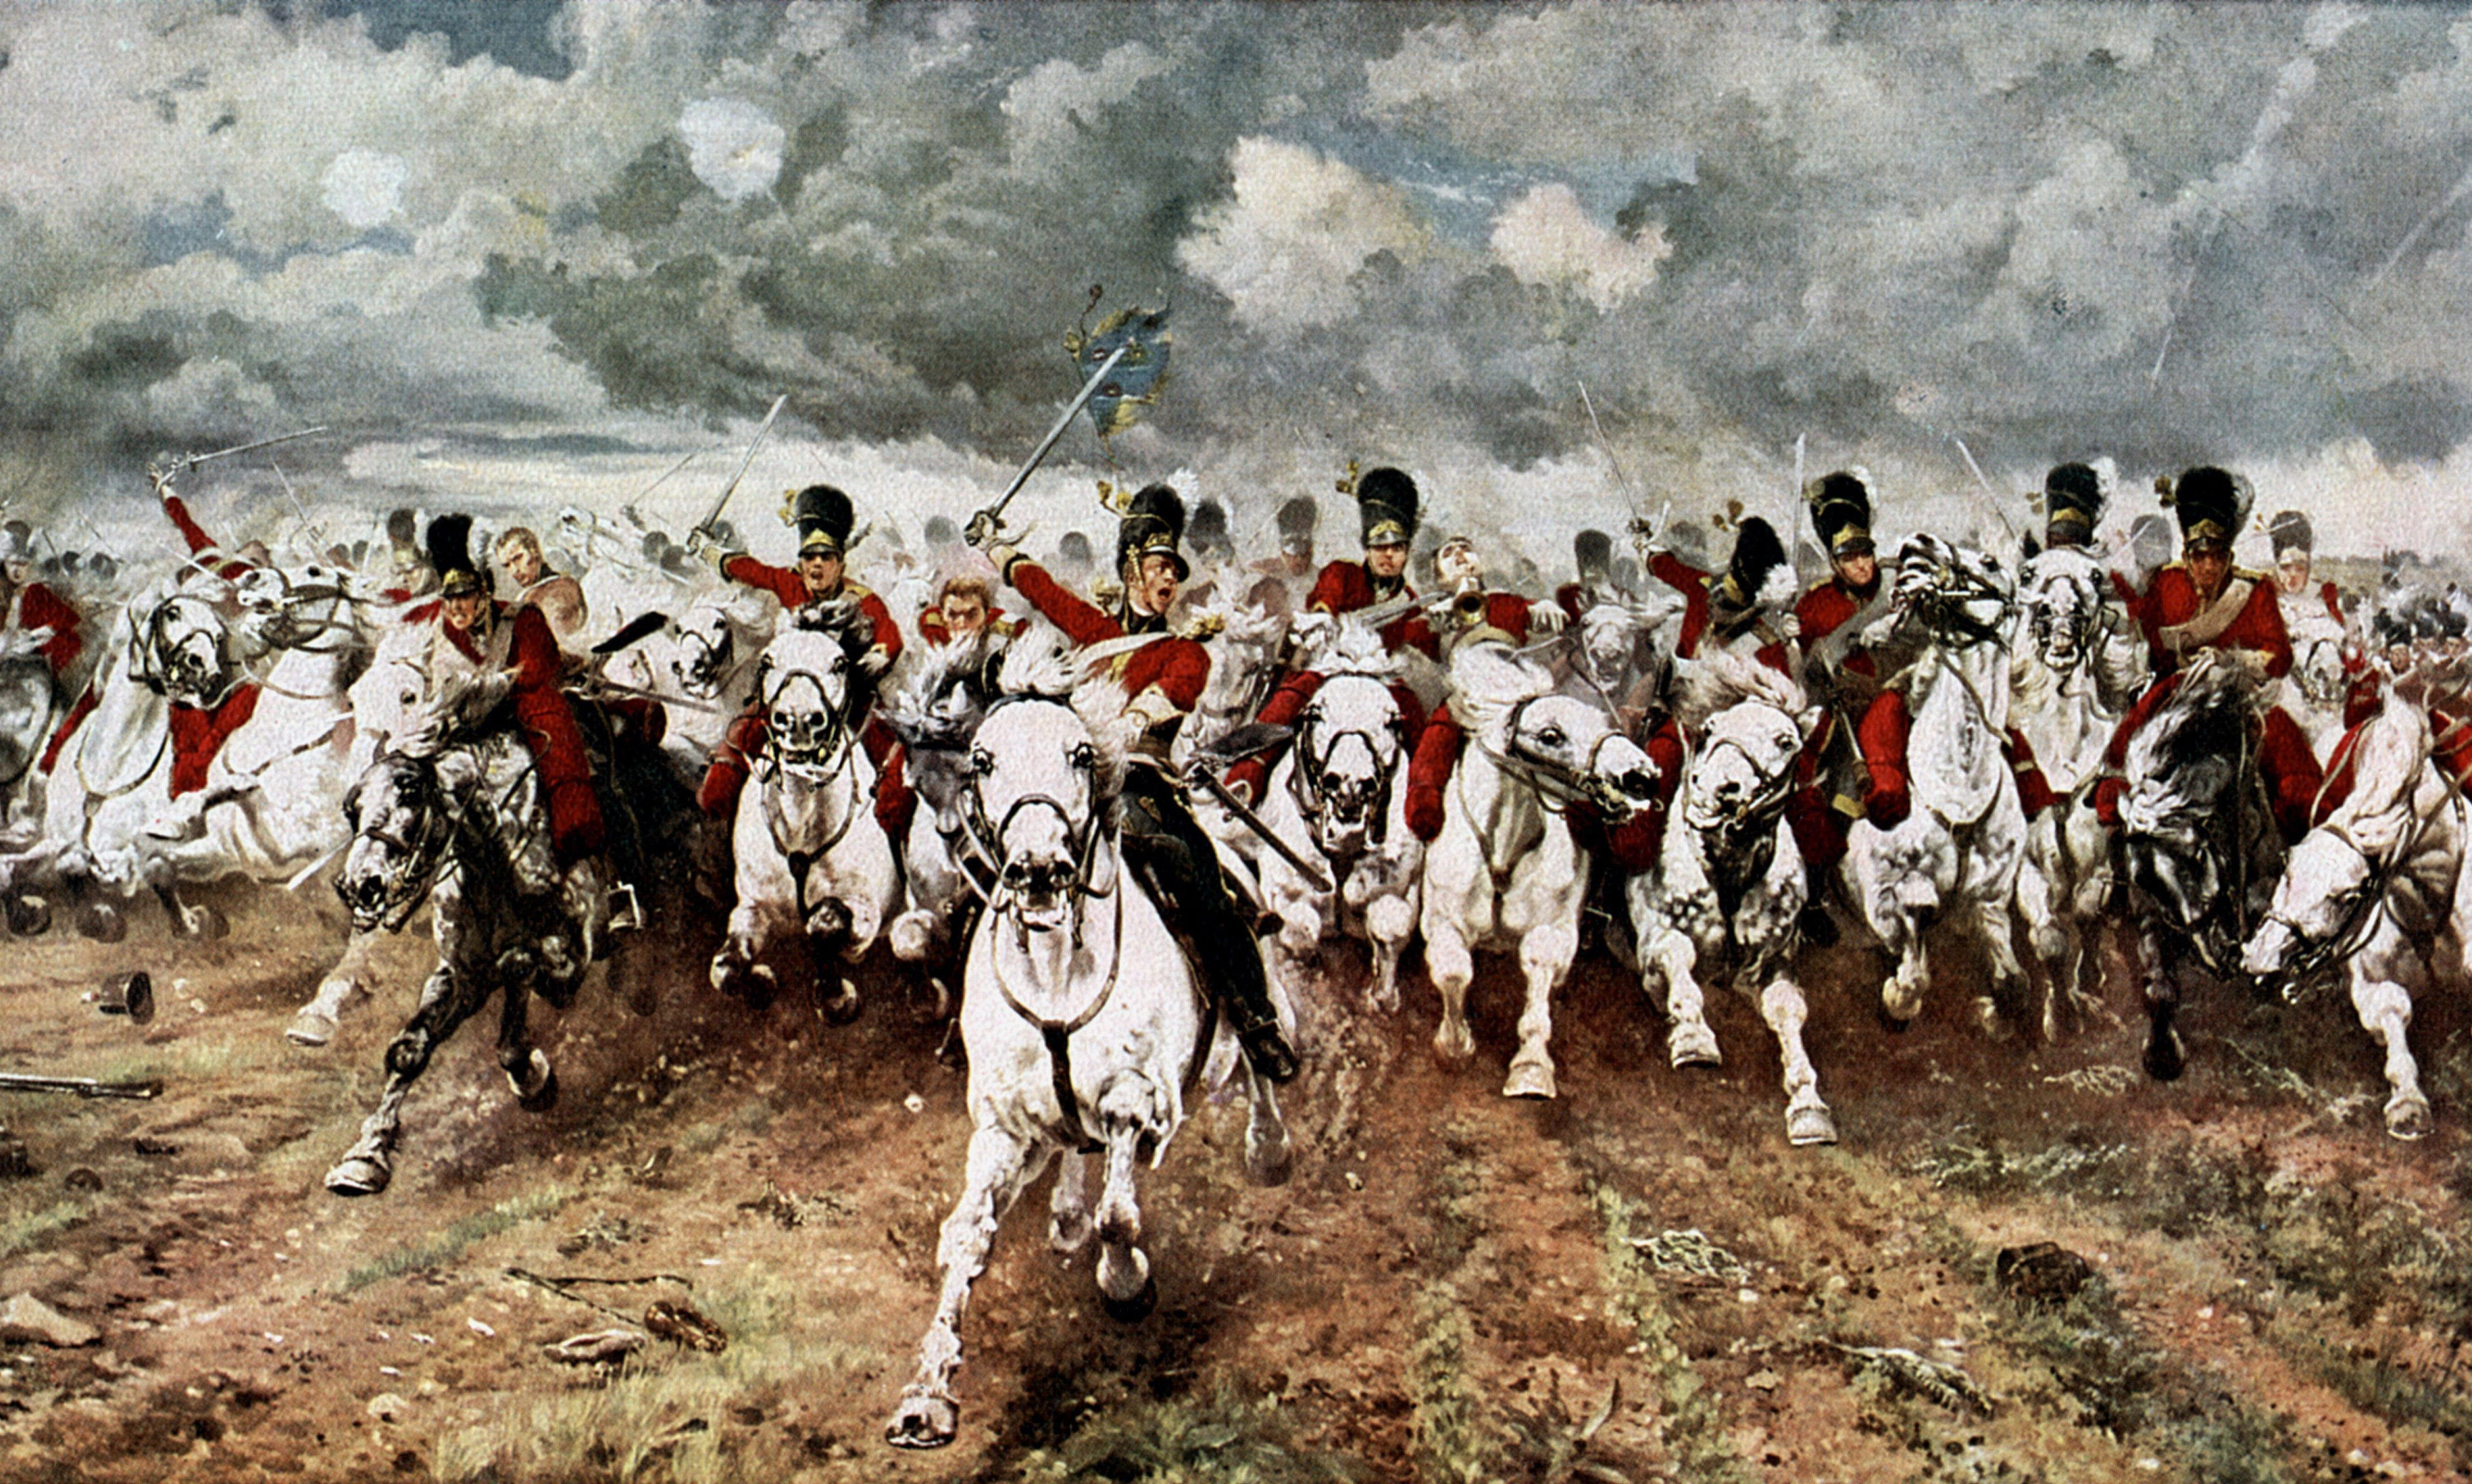 Have the 'too big to fail' banks really met their Waterloo?